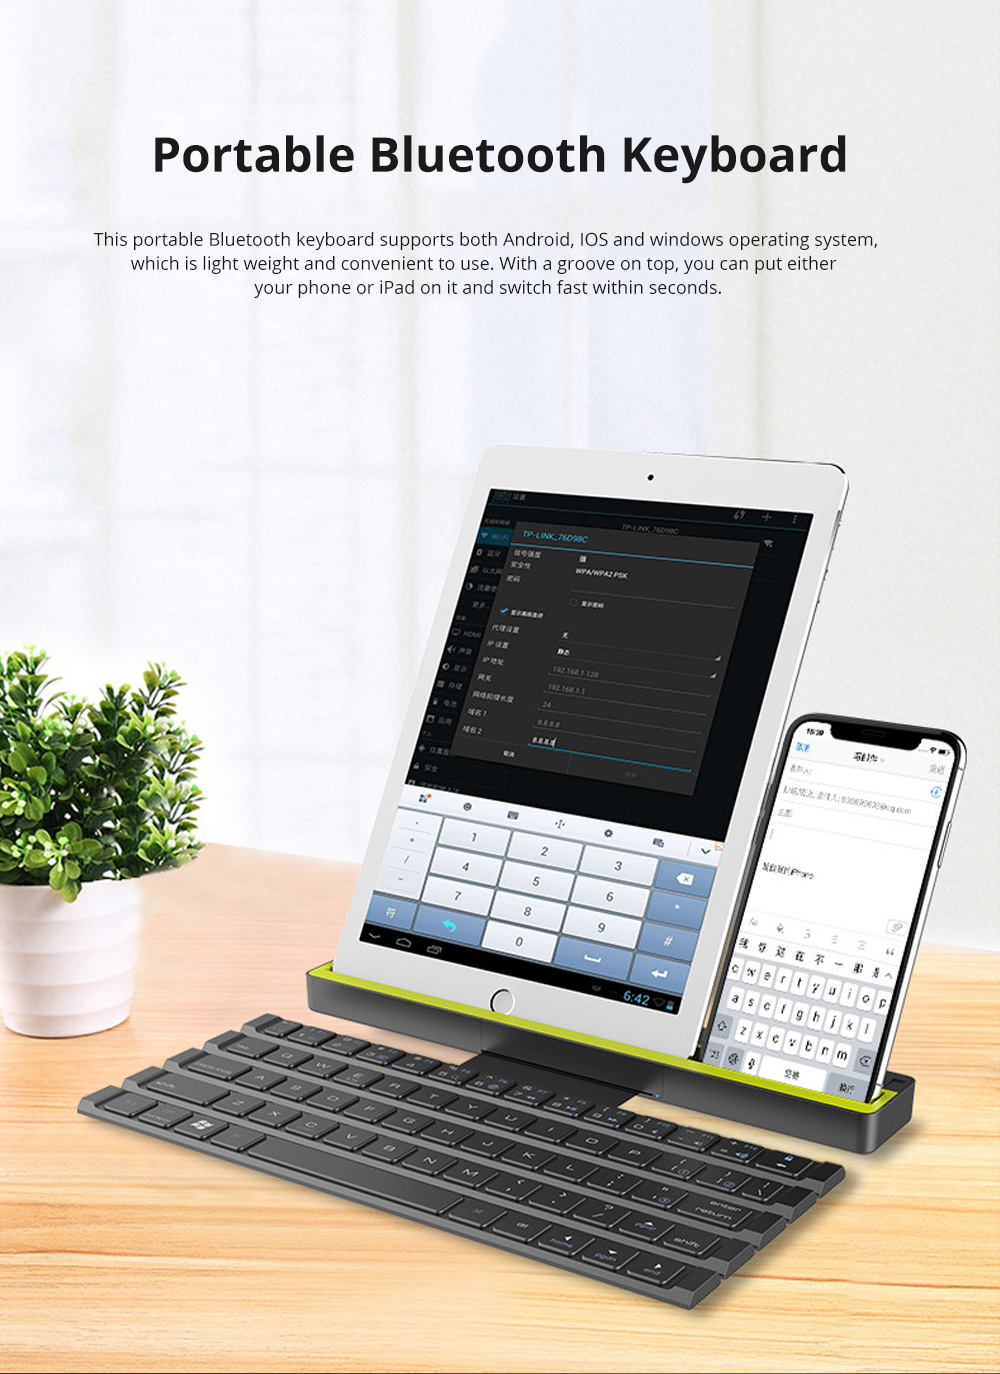 Rock Wireless Bluetooth iPad Keyboard for Both Phones and Tablet Computers Portable Mini-sized Scroll type Android IOS Keyboard for Multiple Devices 0